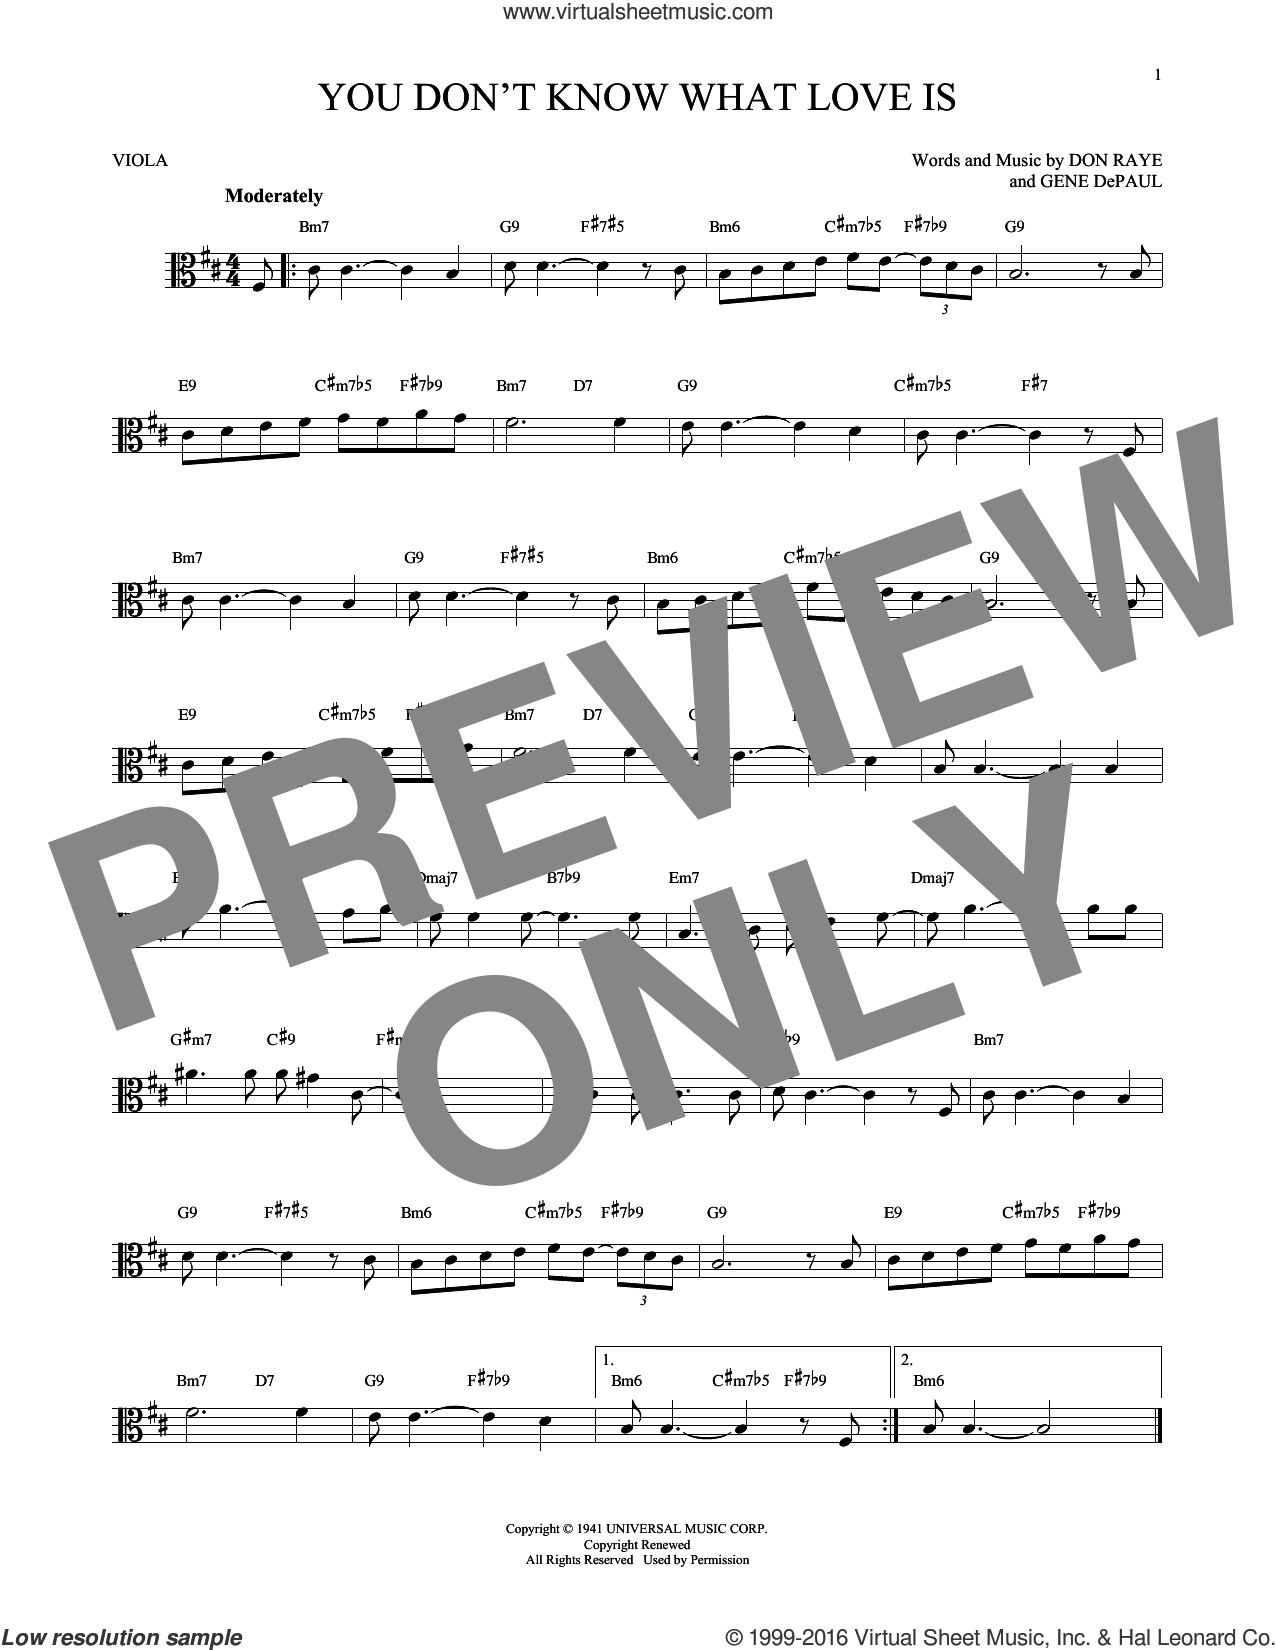 You Don't Know What Love Is sheet music for viola solo by Don Raye, Carol Bruce and Gene DePaul, intermediate skill level